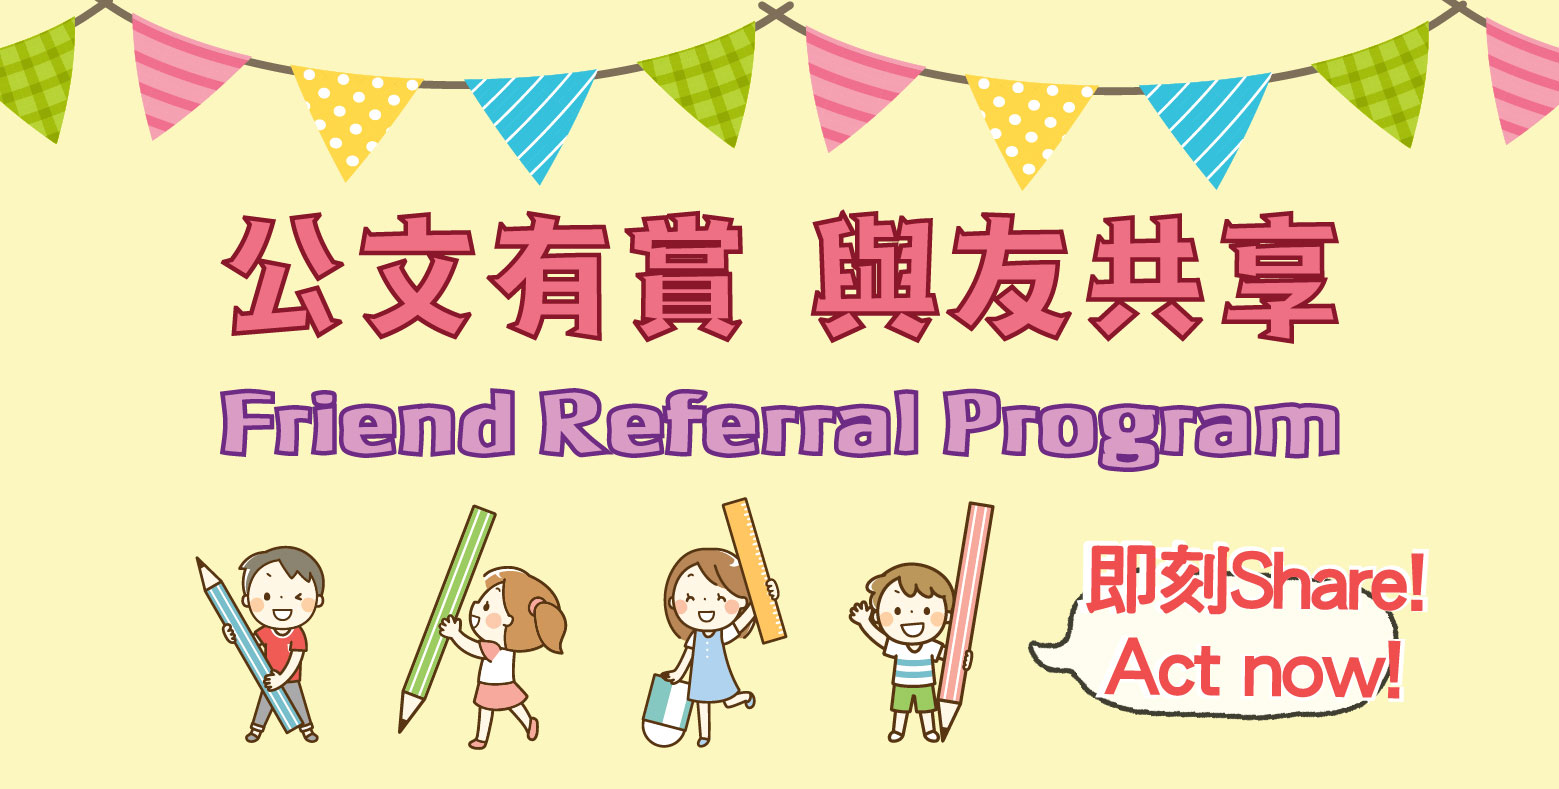 Referral program news 01